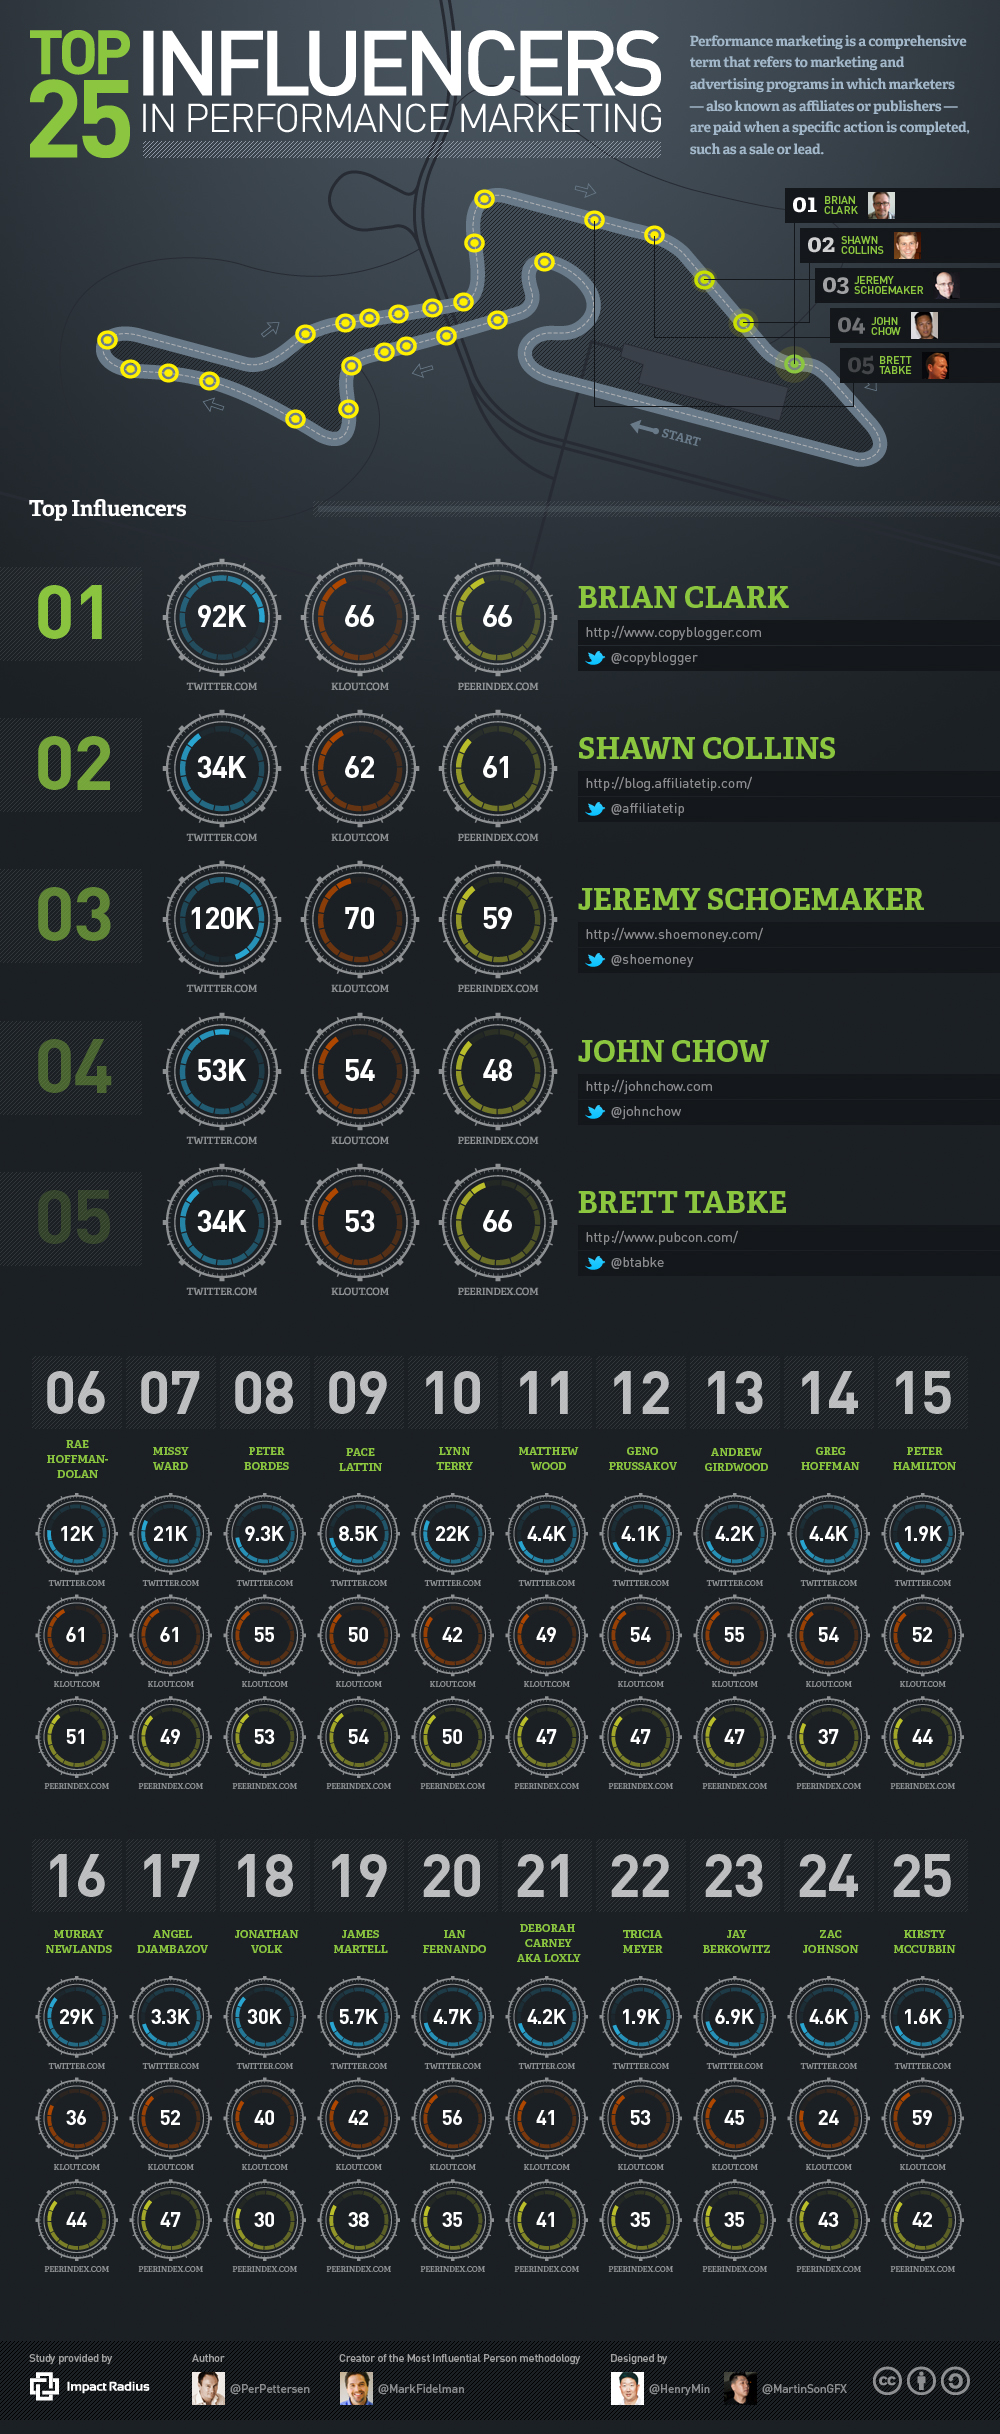 The Most Influential People in Performance Marketing (infographic)